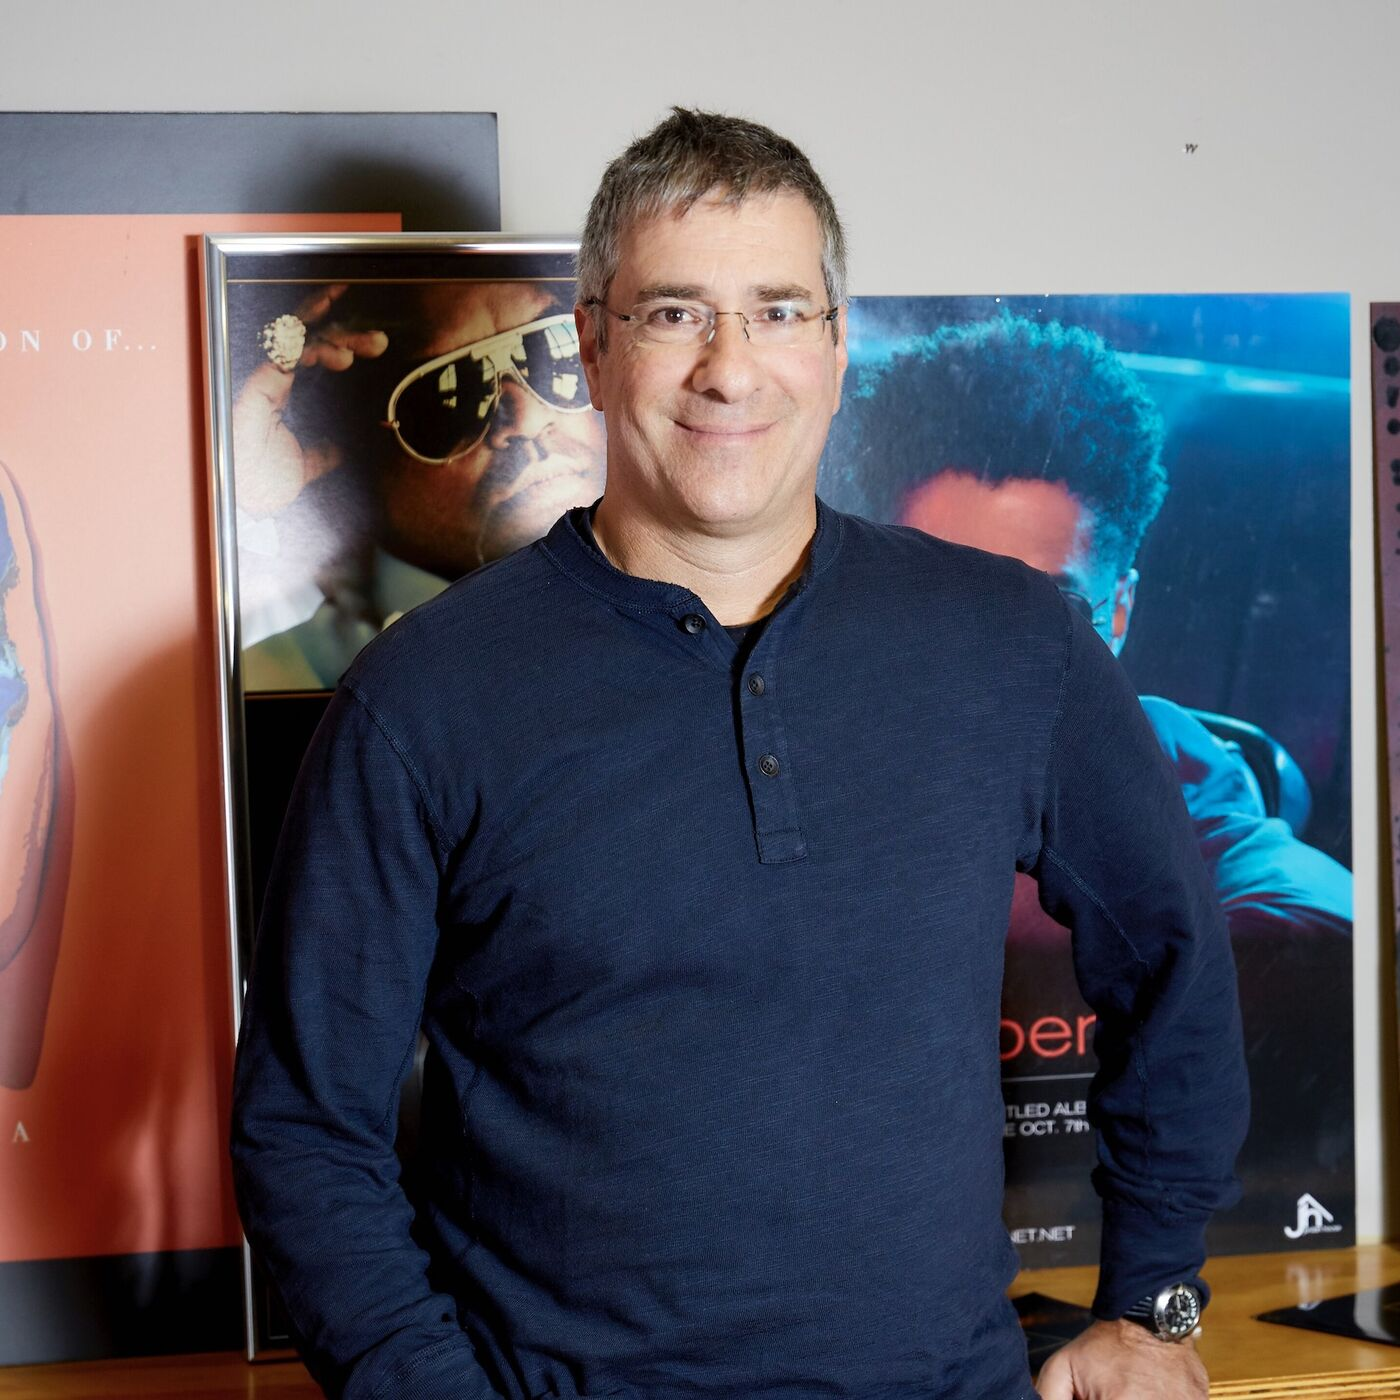 Larry Mestel, CEO, Primary Wave: Bob Marley, Whitney Houston, and Spending $800 million